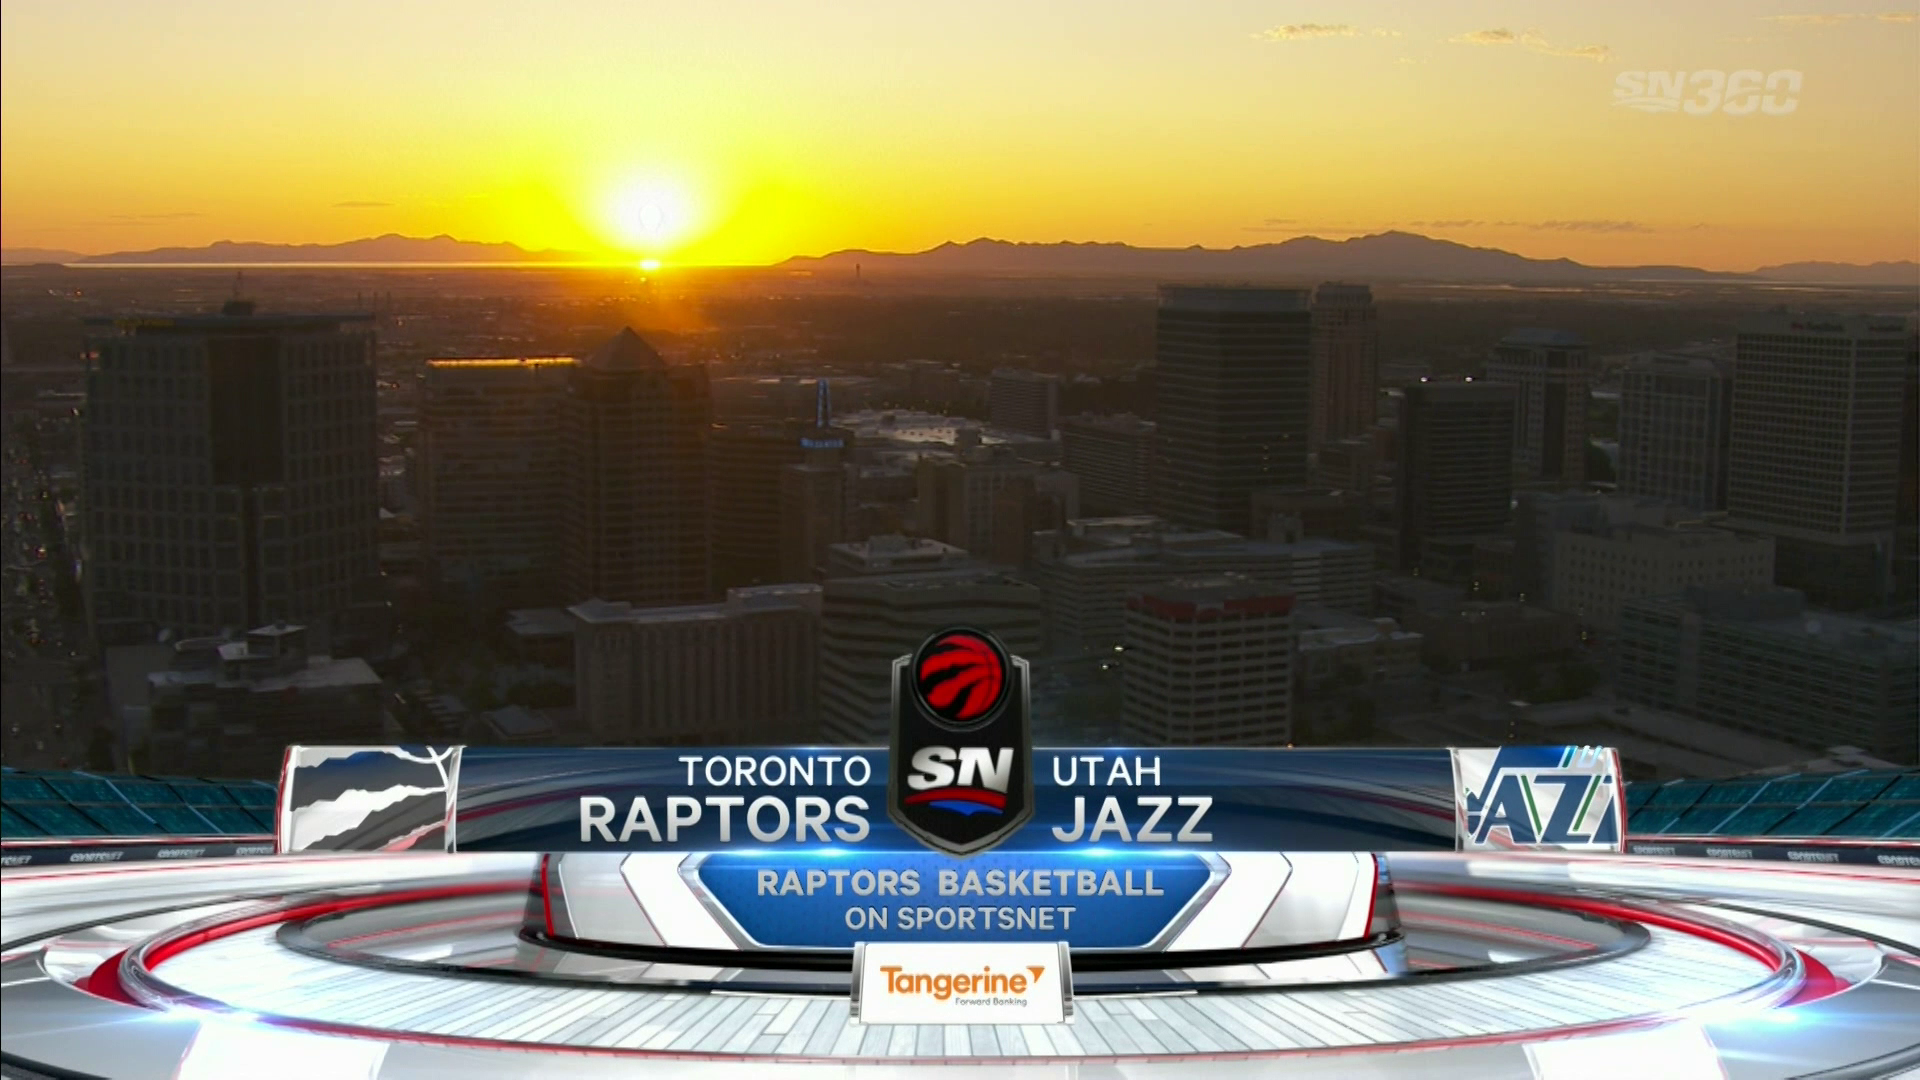 Tangerine Raptors Highlights: Raptors at Jazz - May 1, 2021